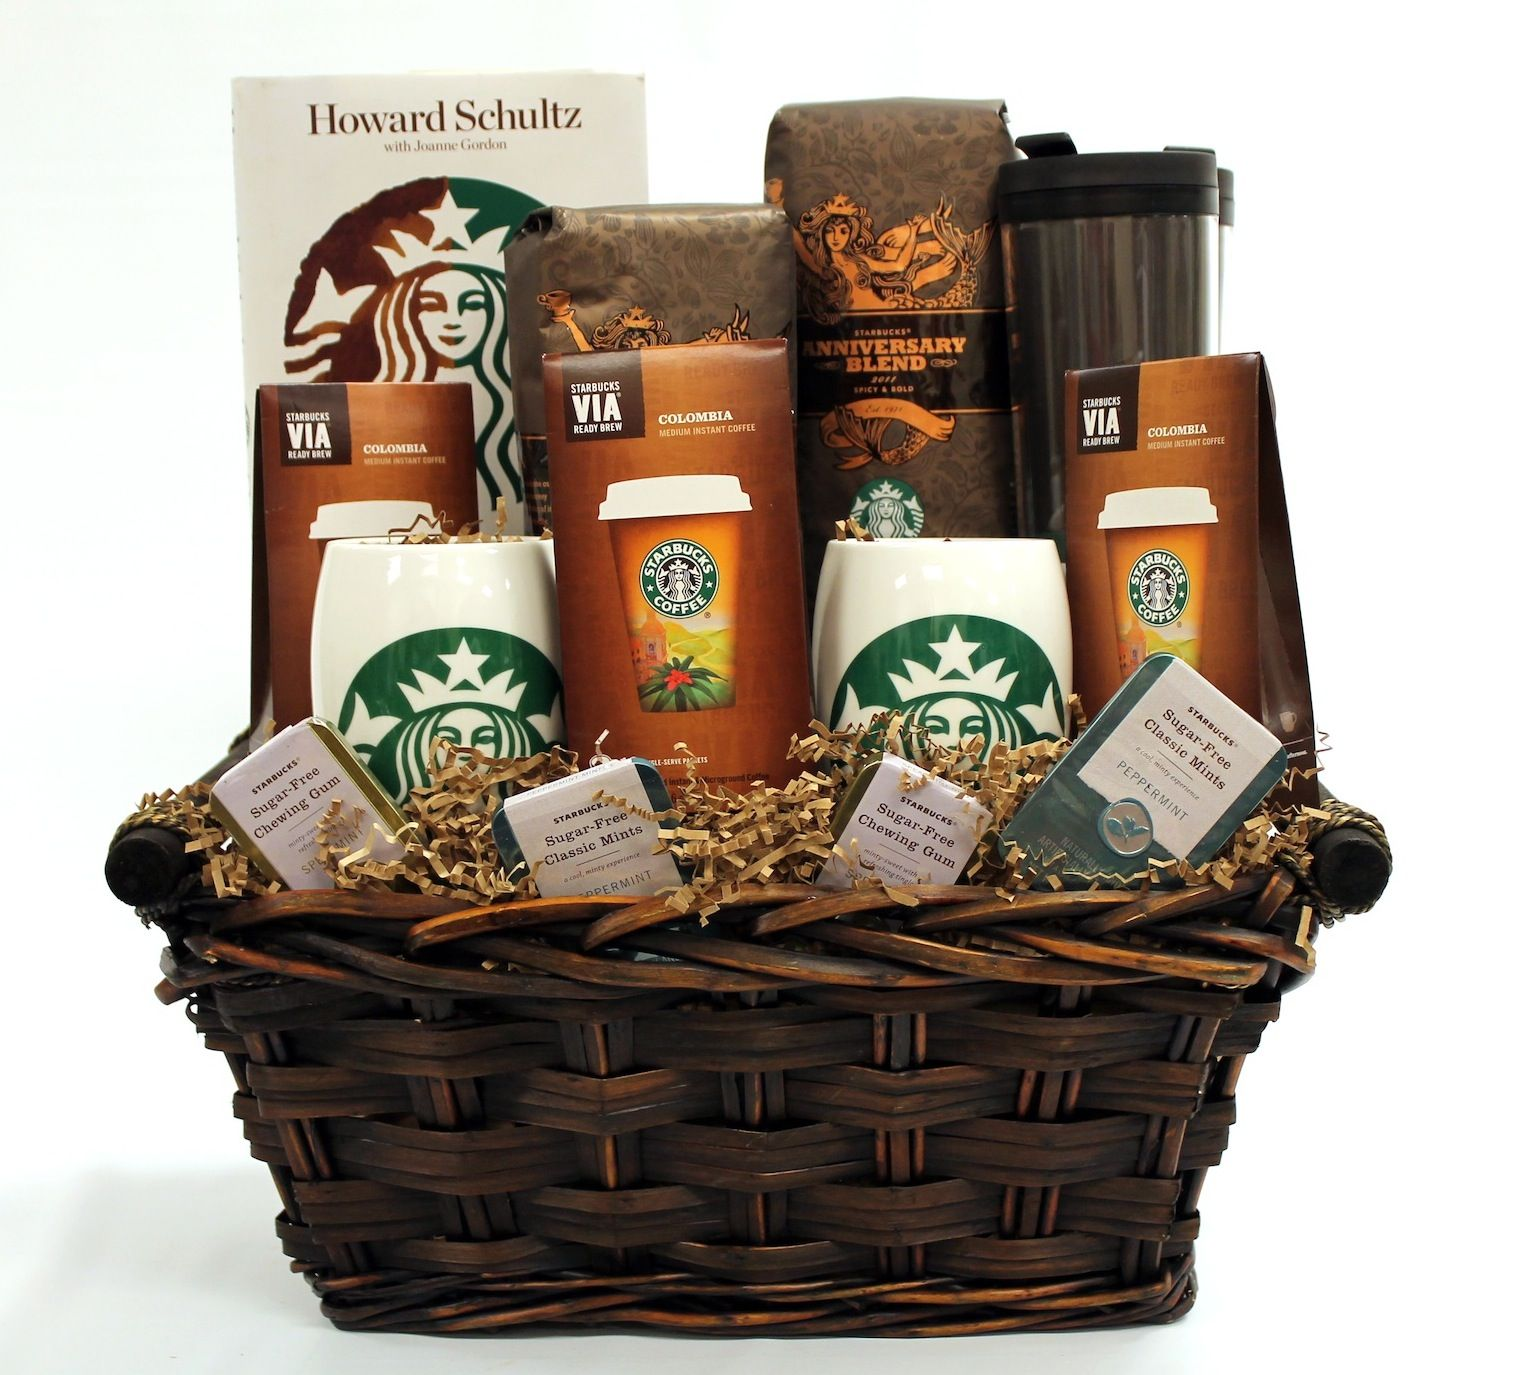 For the coffee enthusiast...a Starbucks gift basket